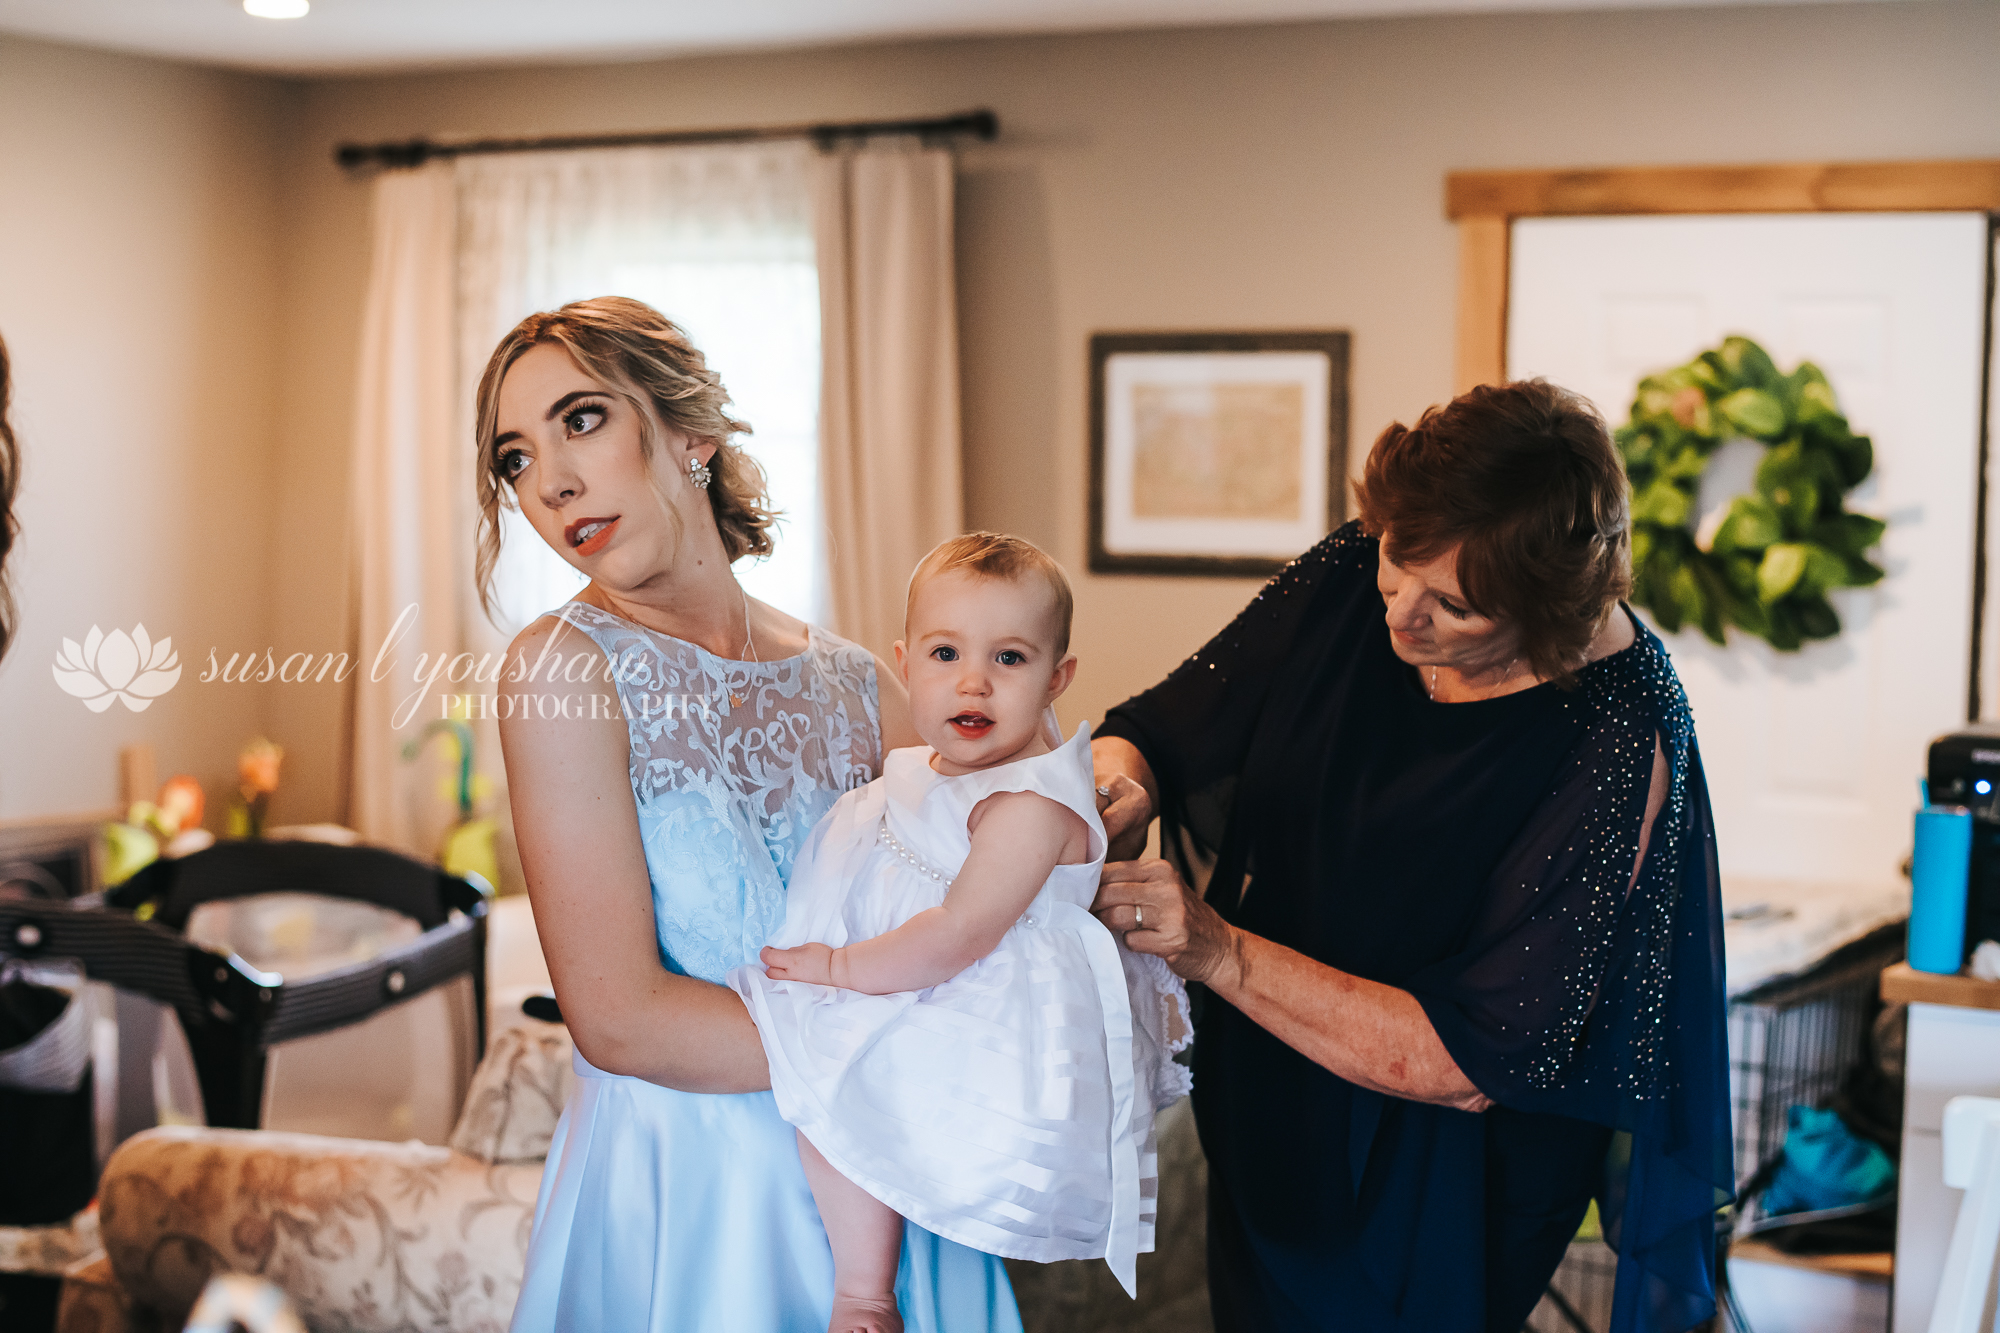 Erin and Jason Wedding Photos 07-06-2019 SLY Photography-43.jpg